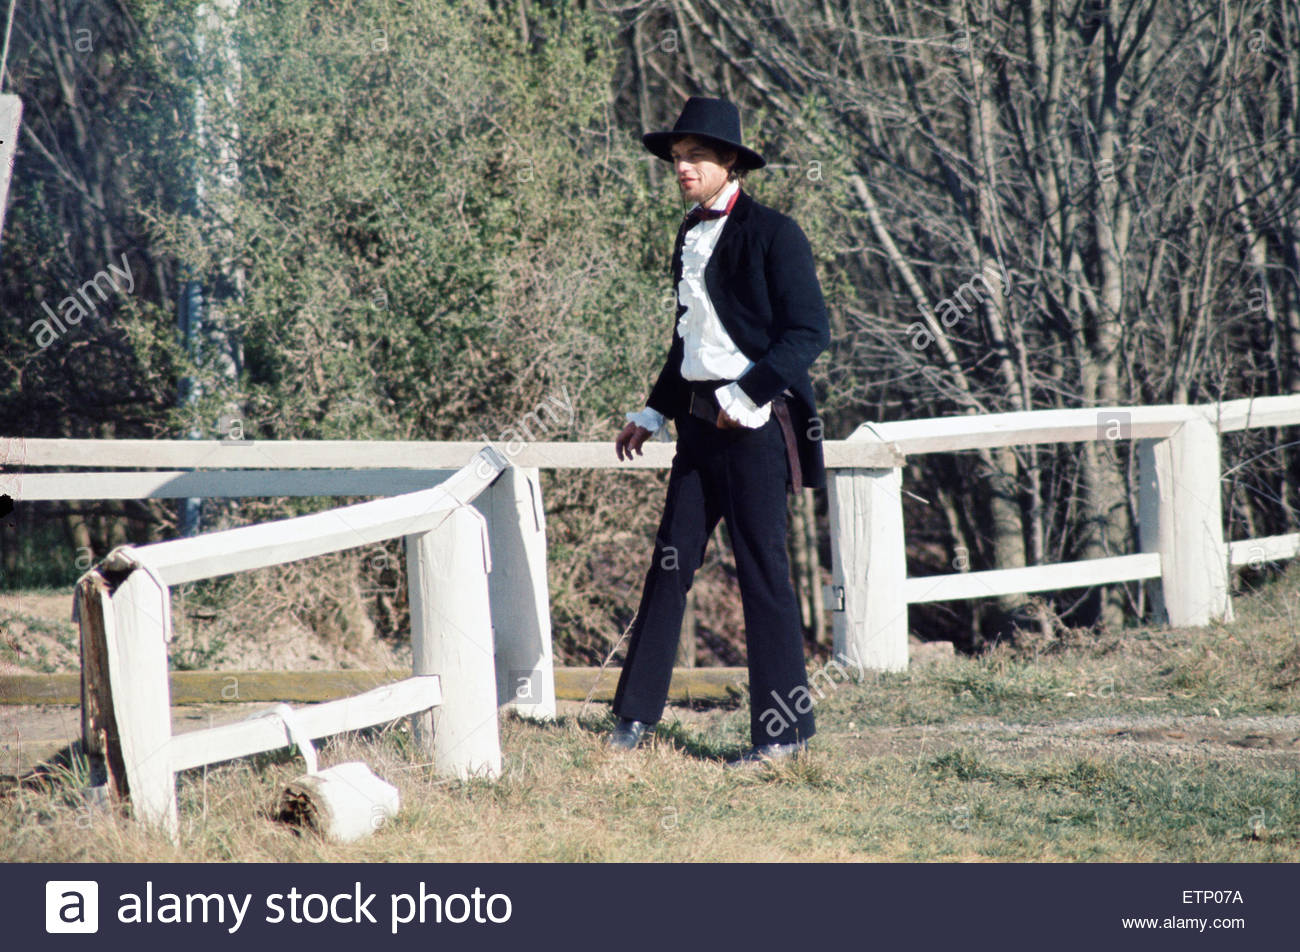 Rolling Stones singer Mick Jagger pictured in Australia during the filming of Ned Kelly. August 1969 - Stock Image